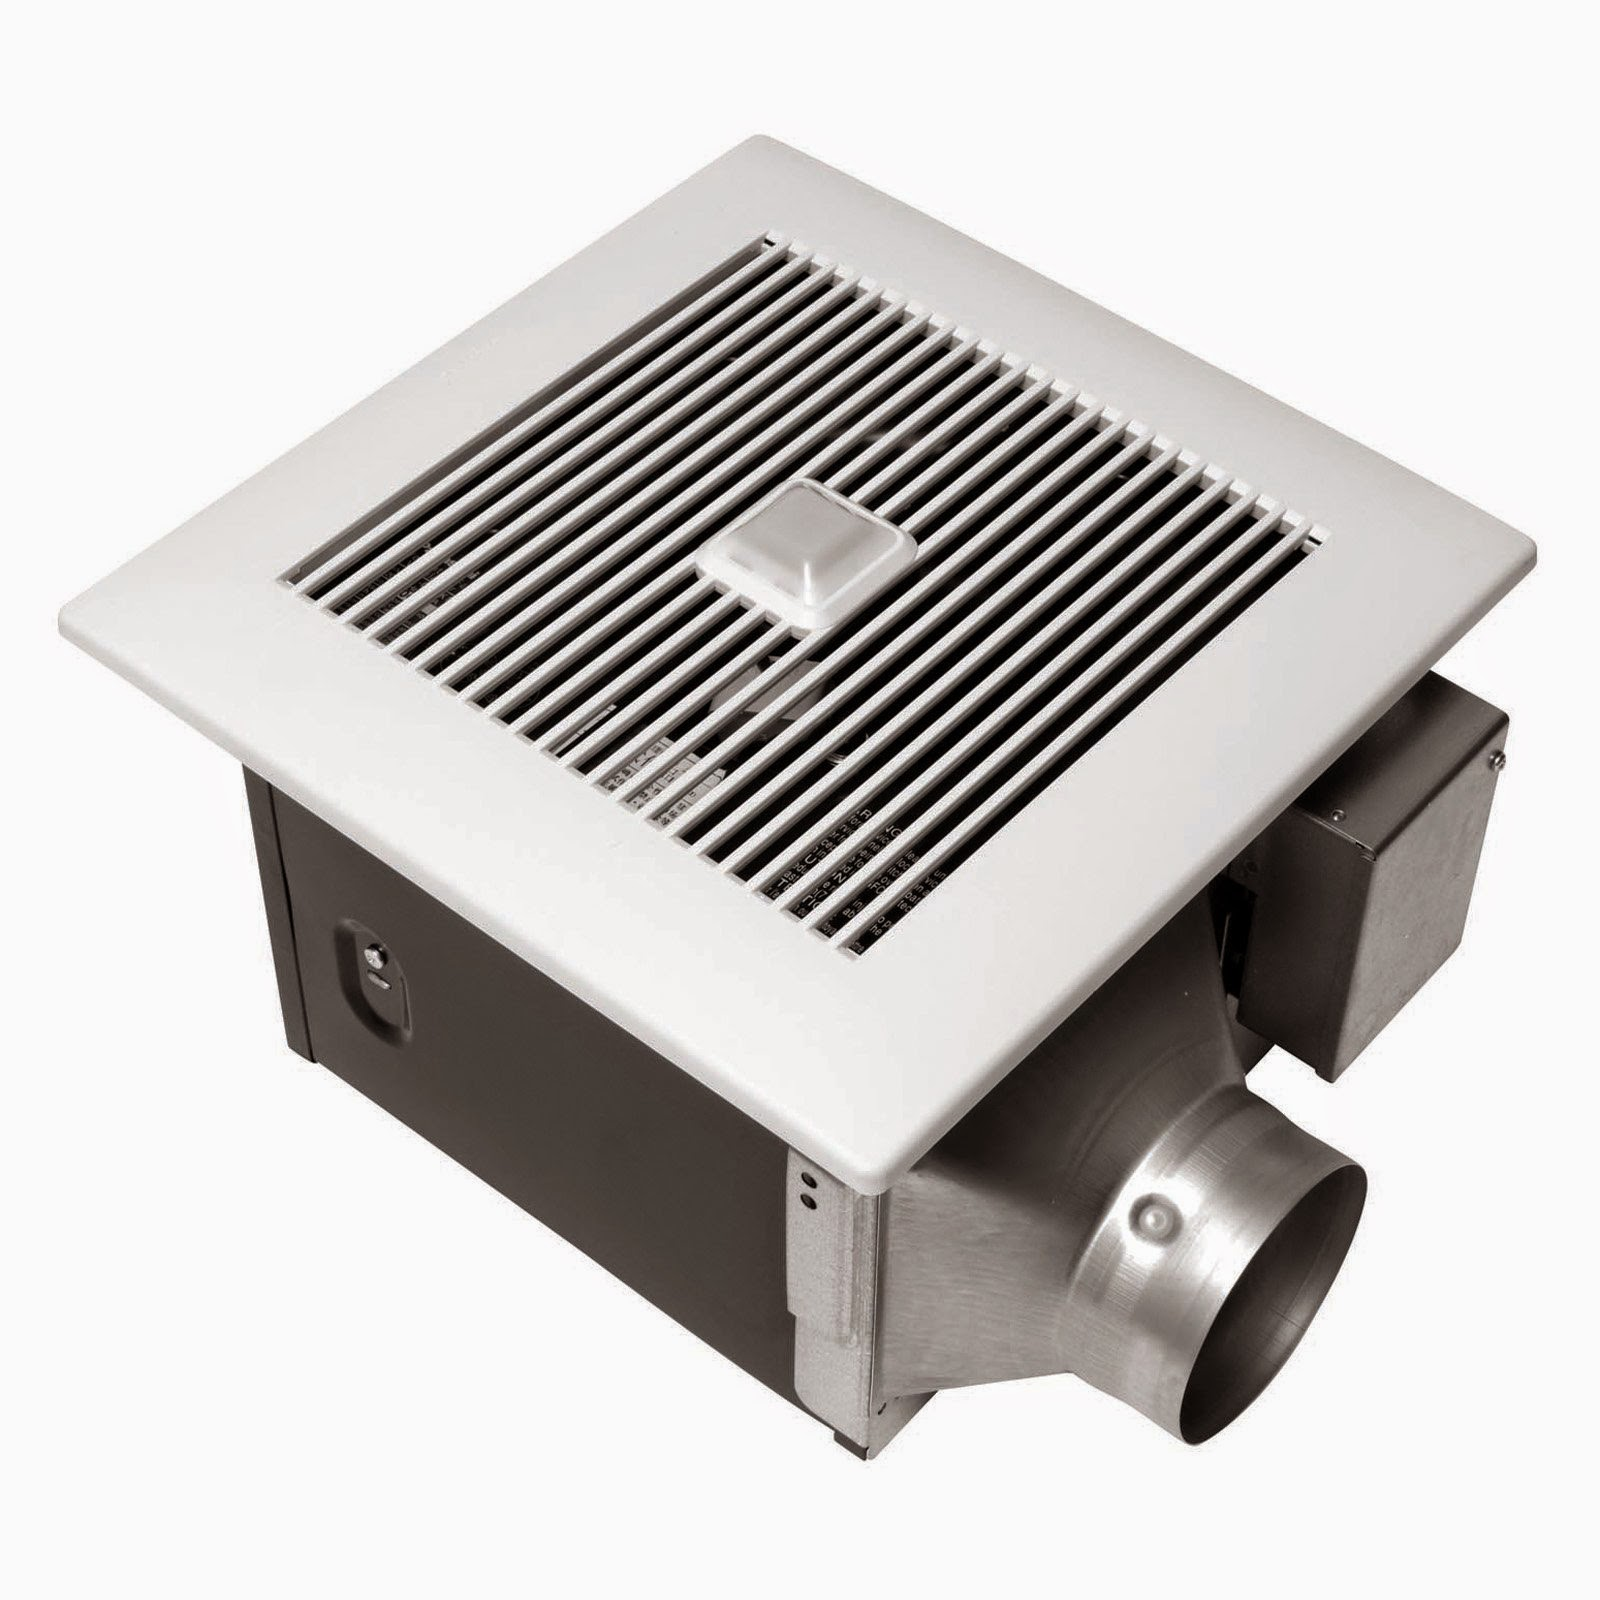 The Design Panasonic Bathroom Exhaust Fan Picture